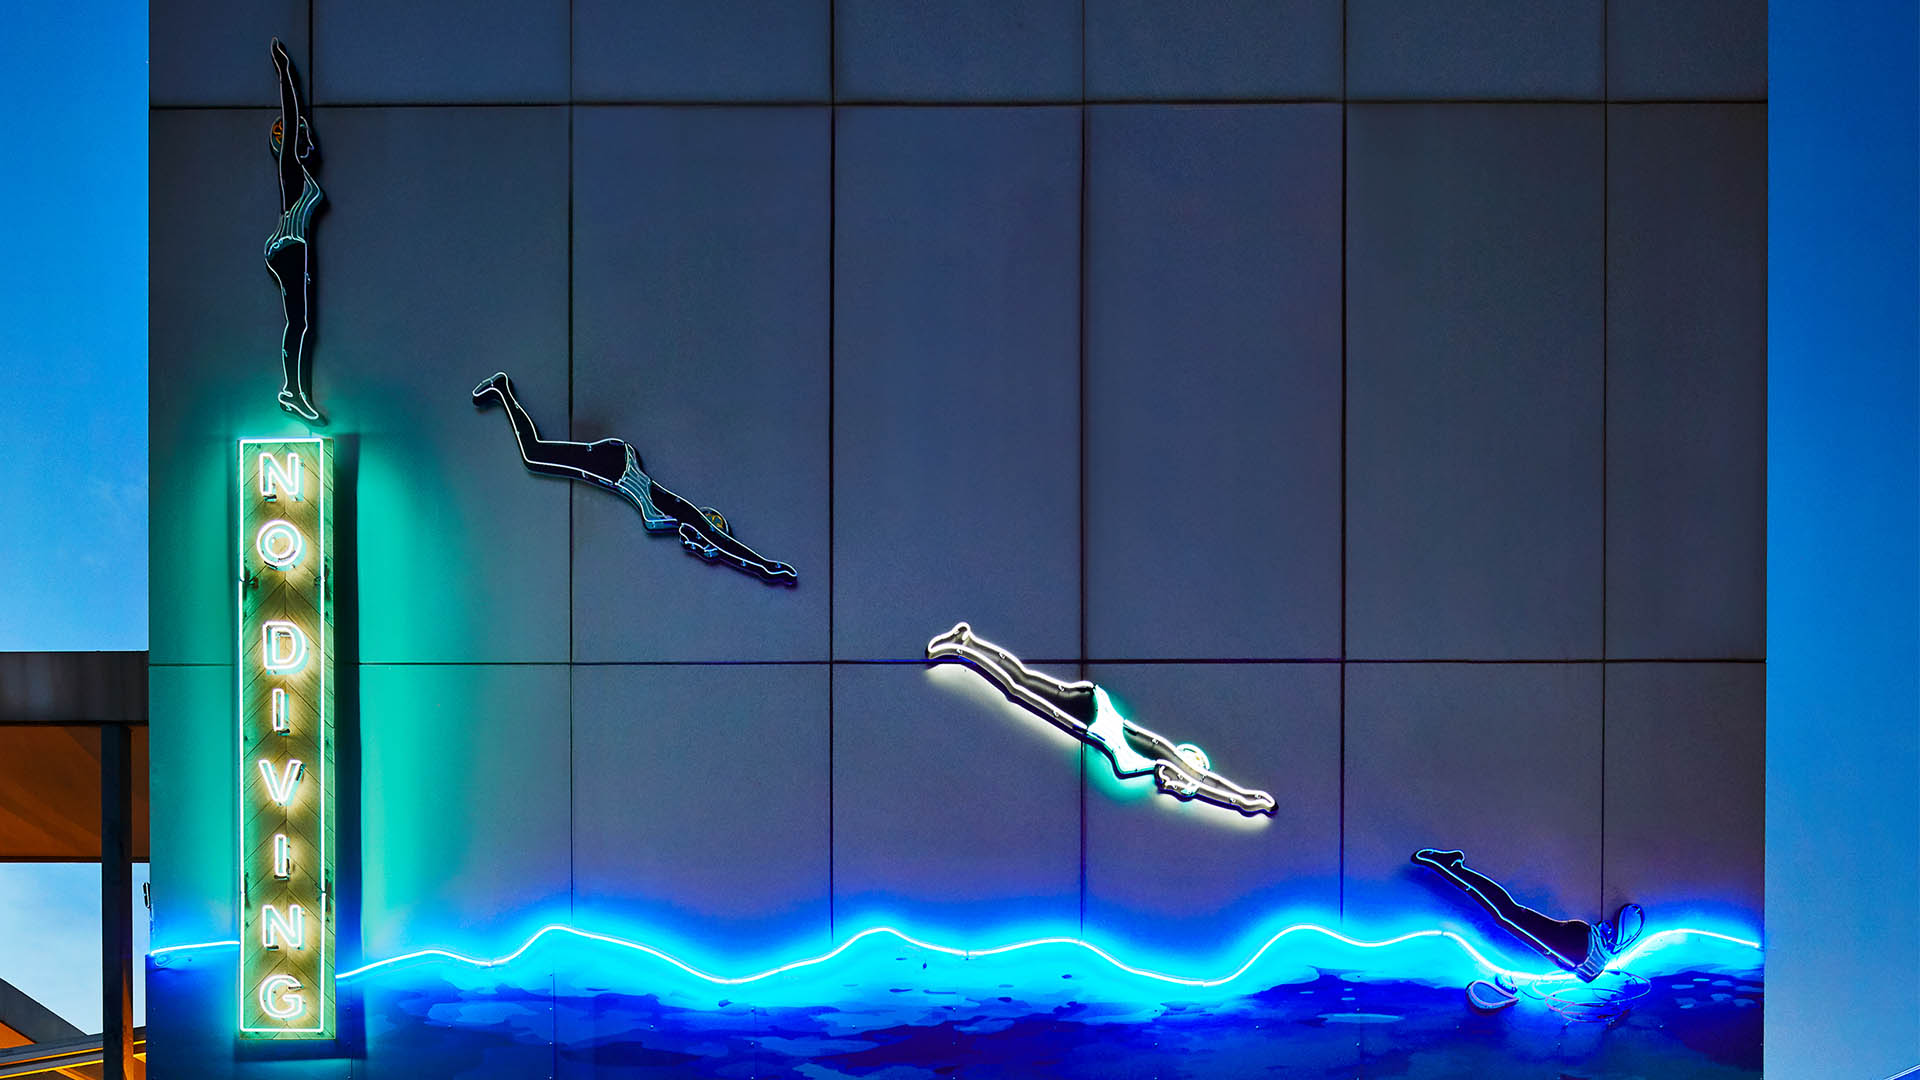 No Diving neon sign